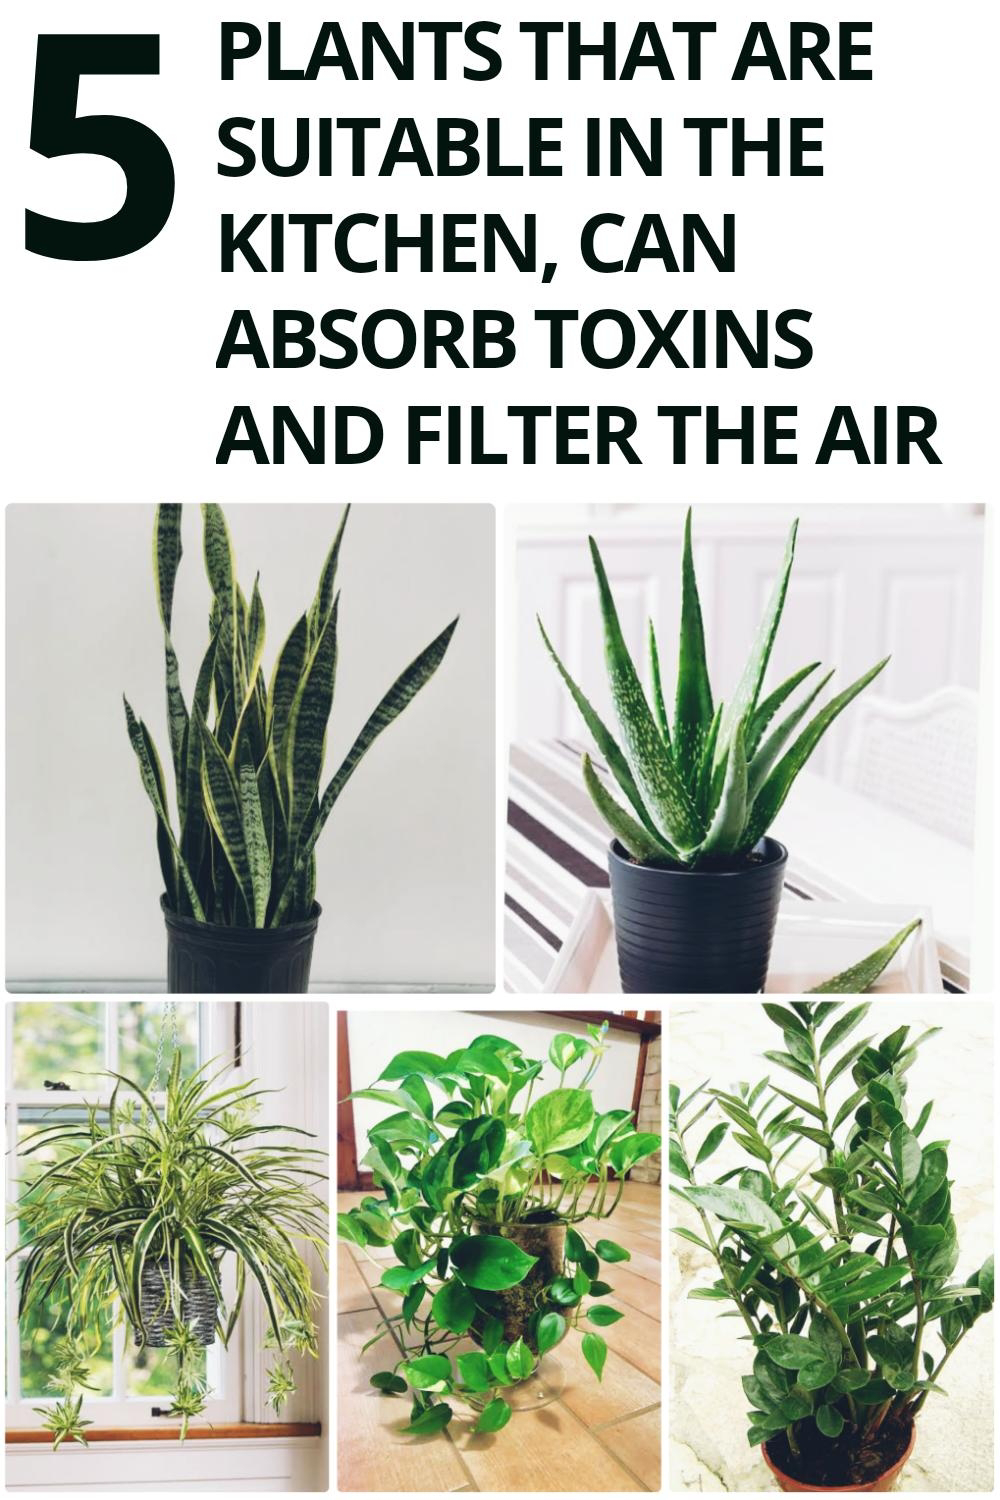 5 Plants That Are Suitable in The Kitchen, Can Absorb Toxins And Filter The Air